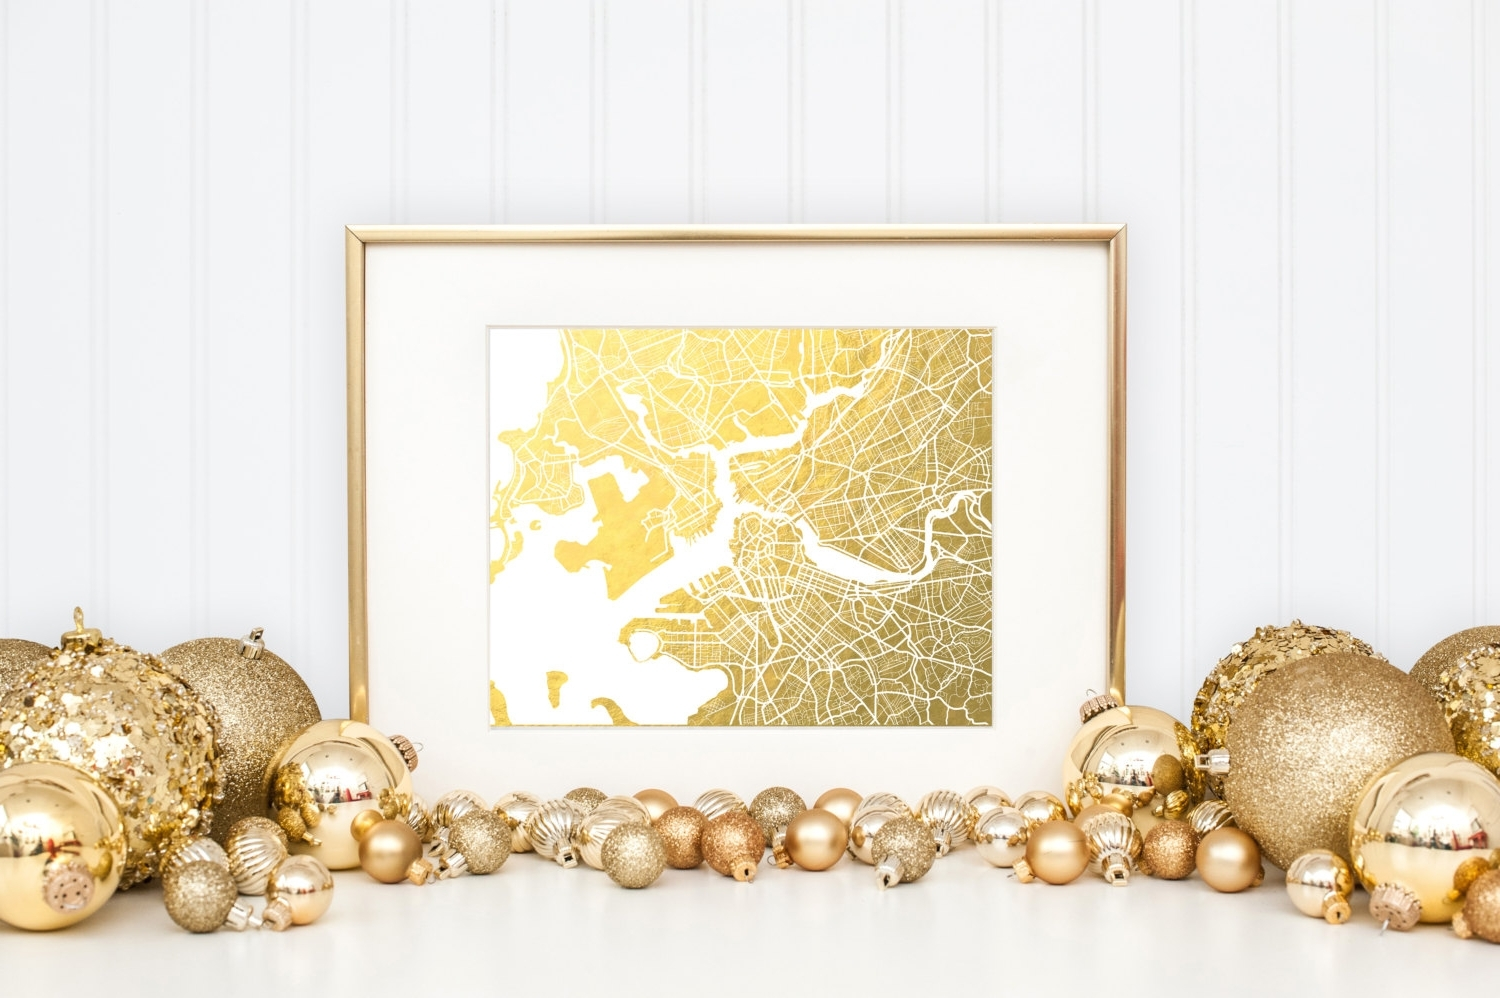 Gold Wall Art For Famous 24 Nonpareil Gold Wall Decor That Surprising (View 4 of 15)